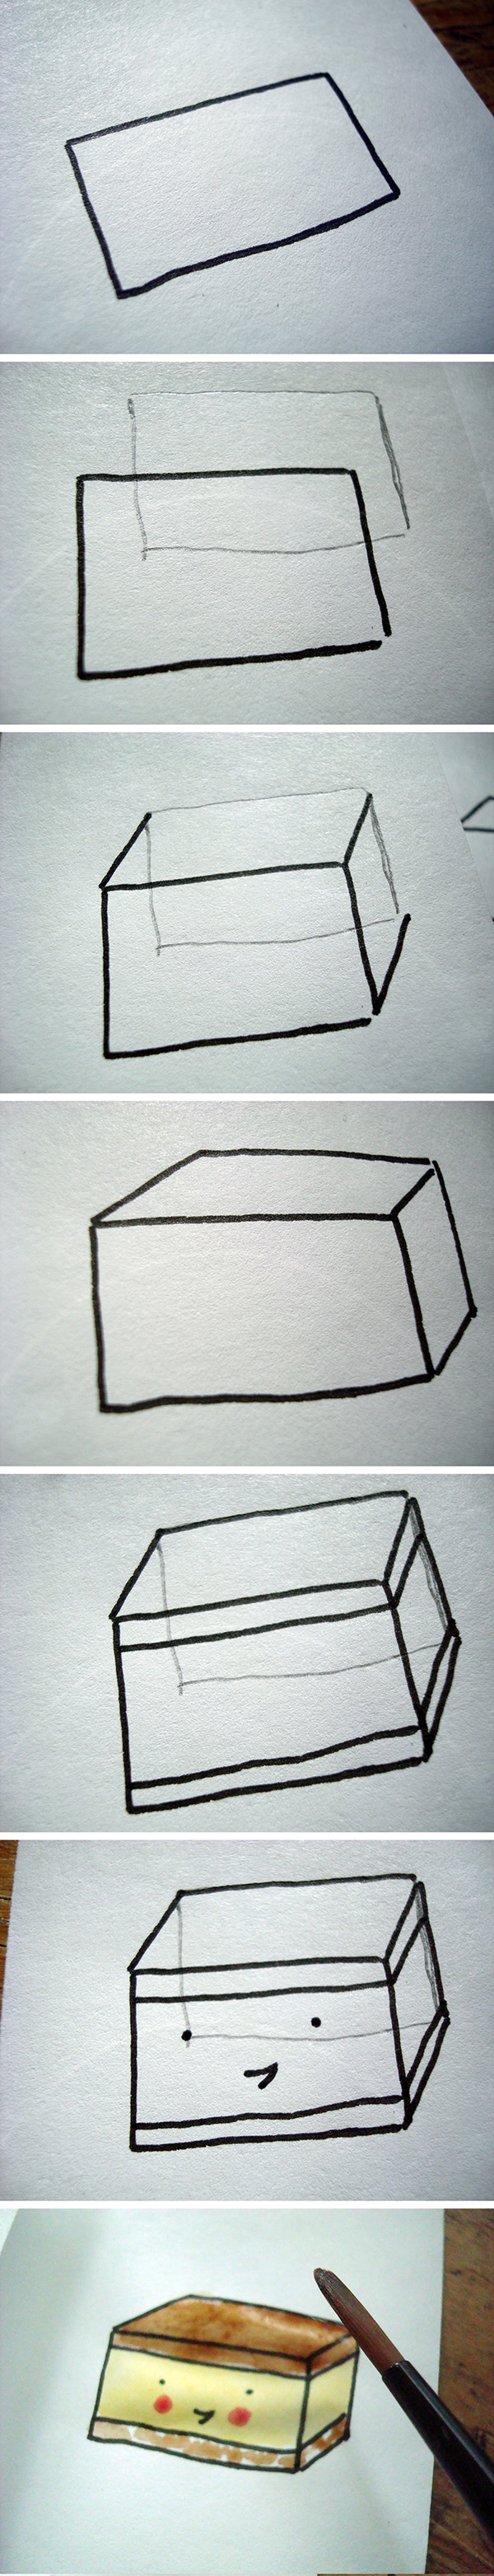 How to draw rectangular pastries